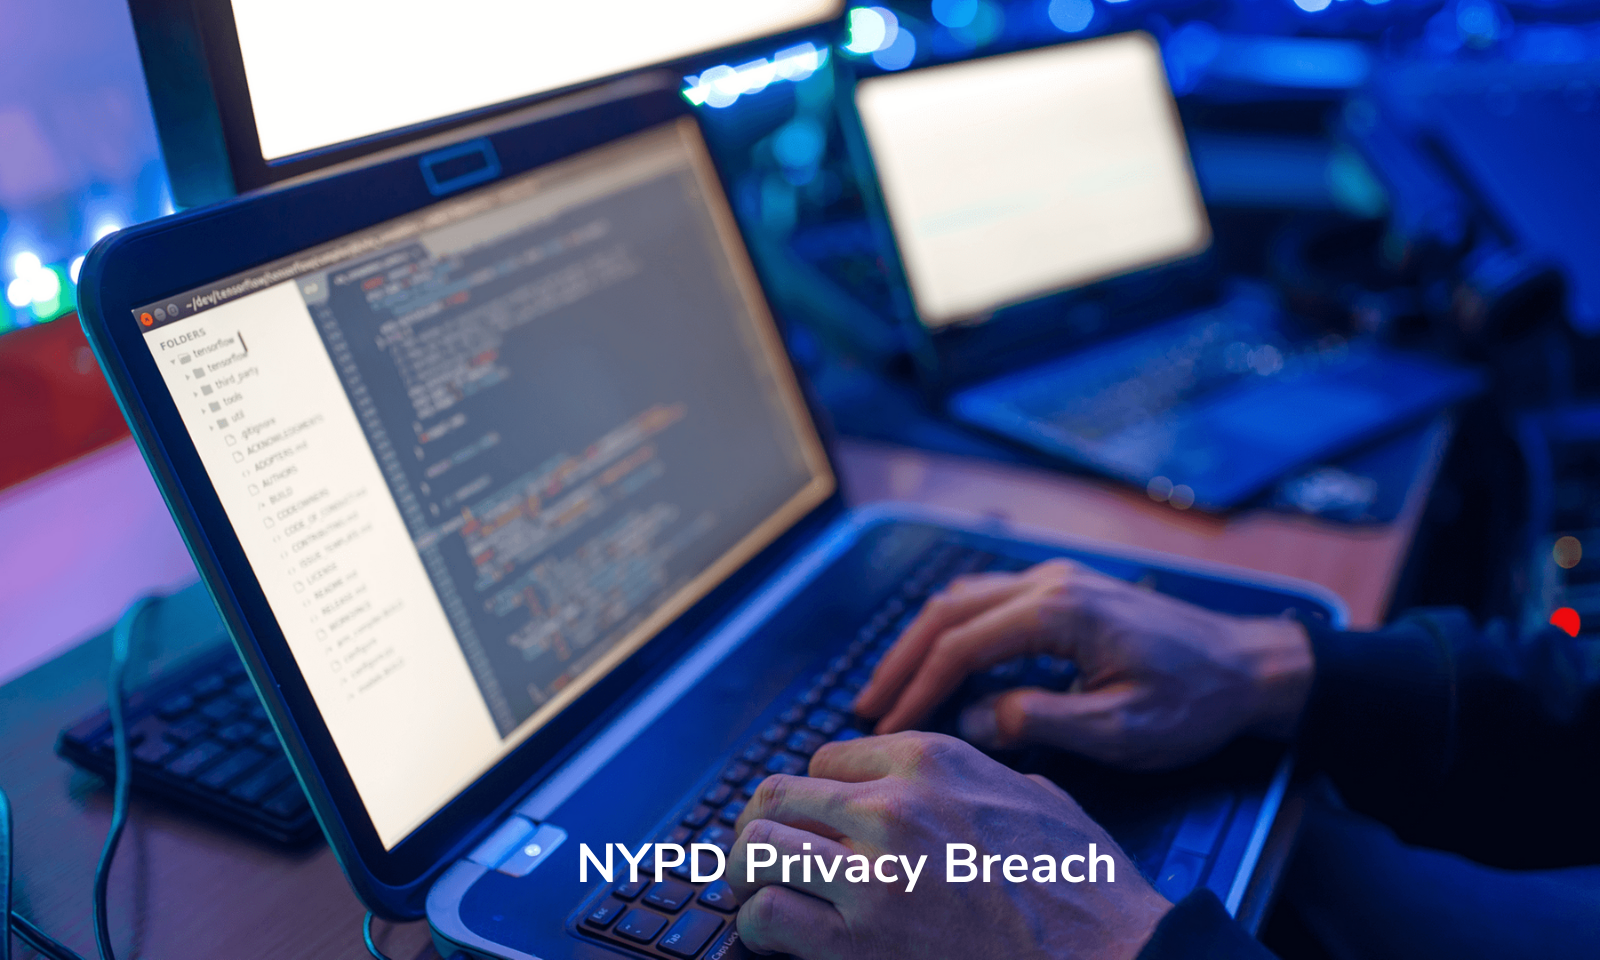 NYPD Privacy Breach